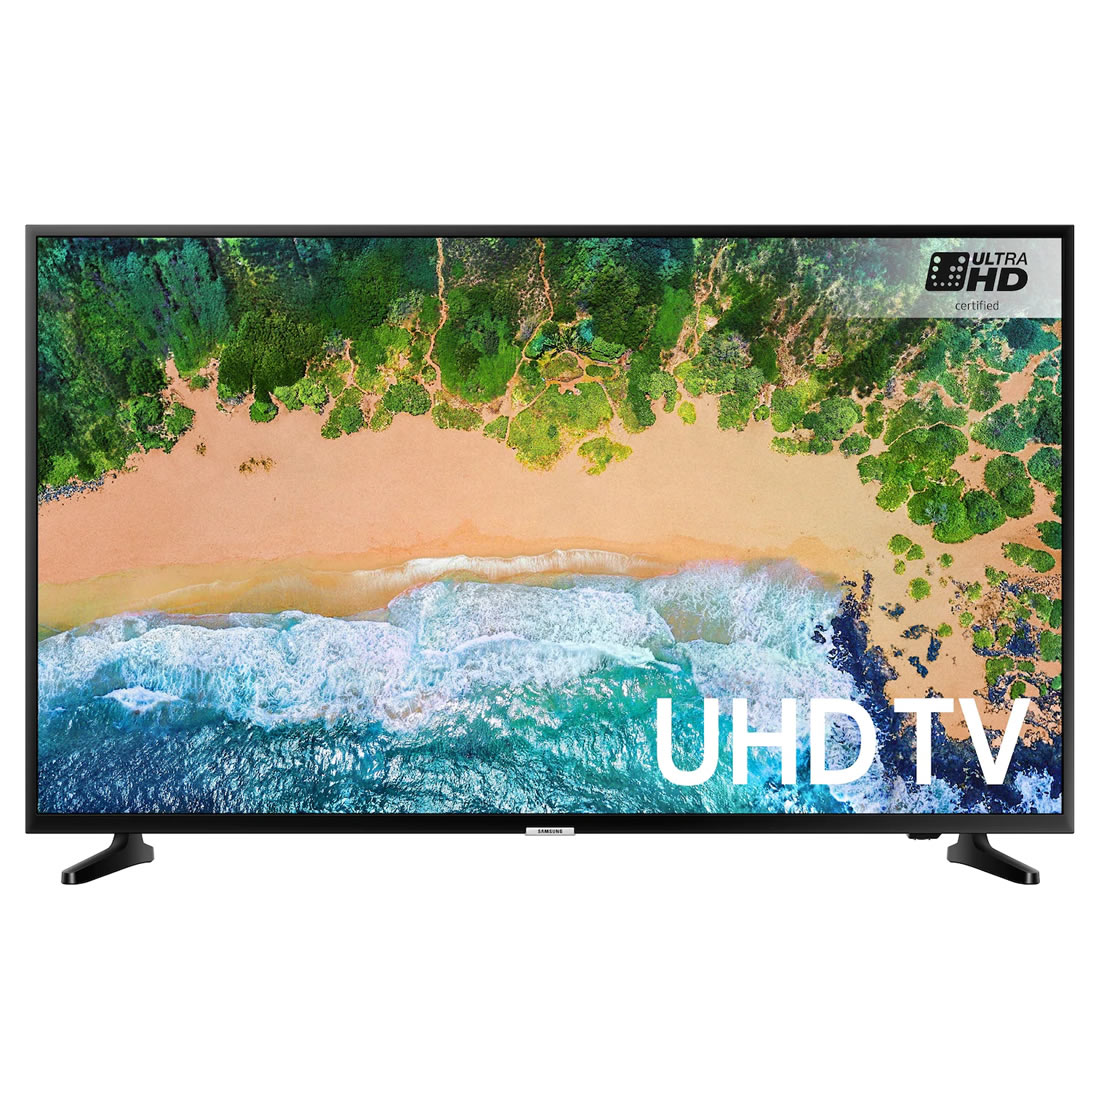 Image of 55inch UHD 4K LED SMART TV HDR10+ TVPlus